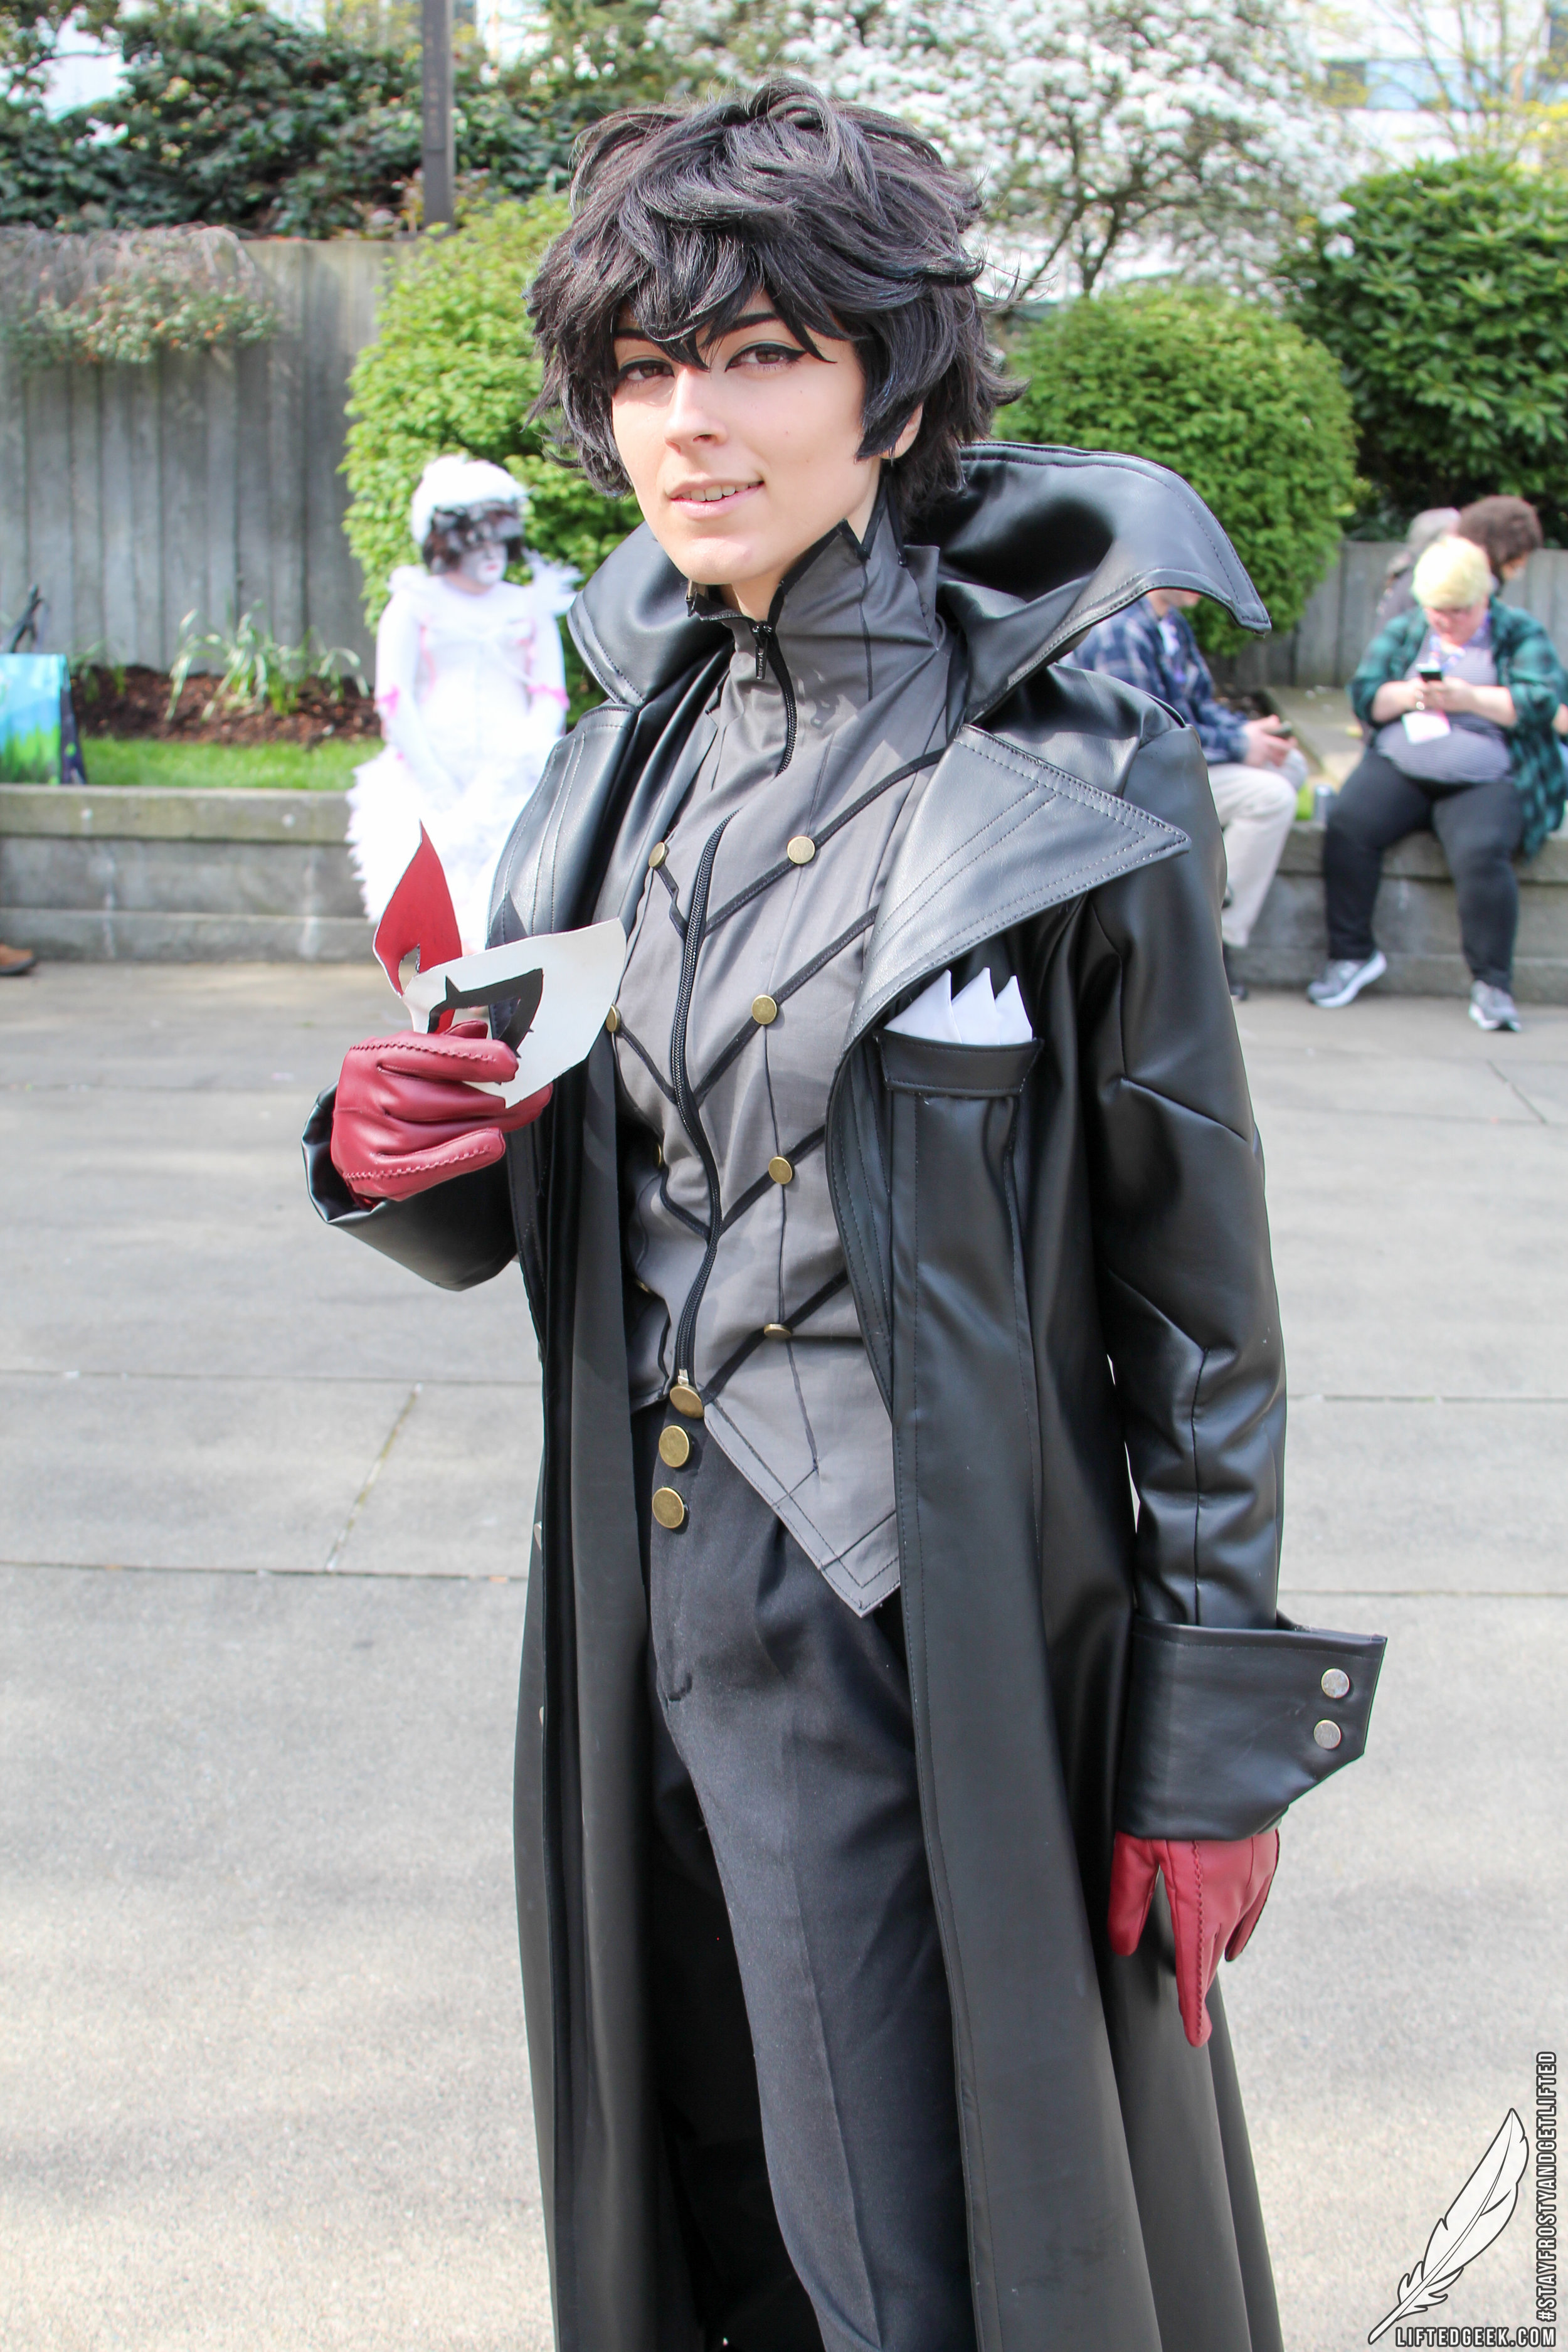 Sakuracon-cosplay-91.jpg